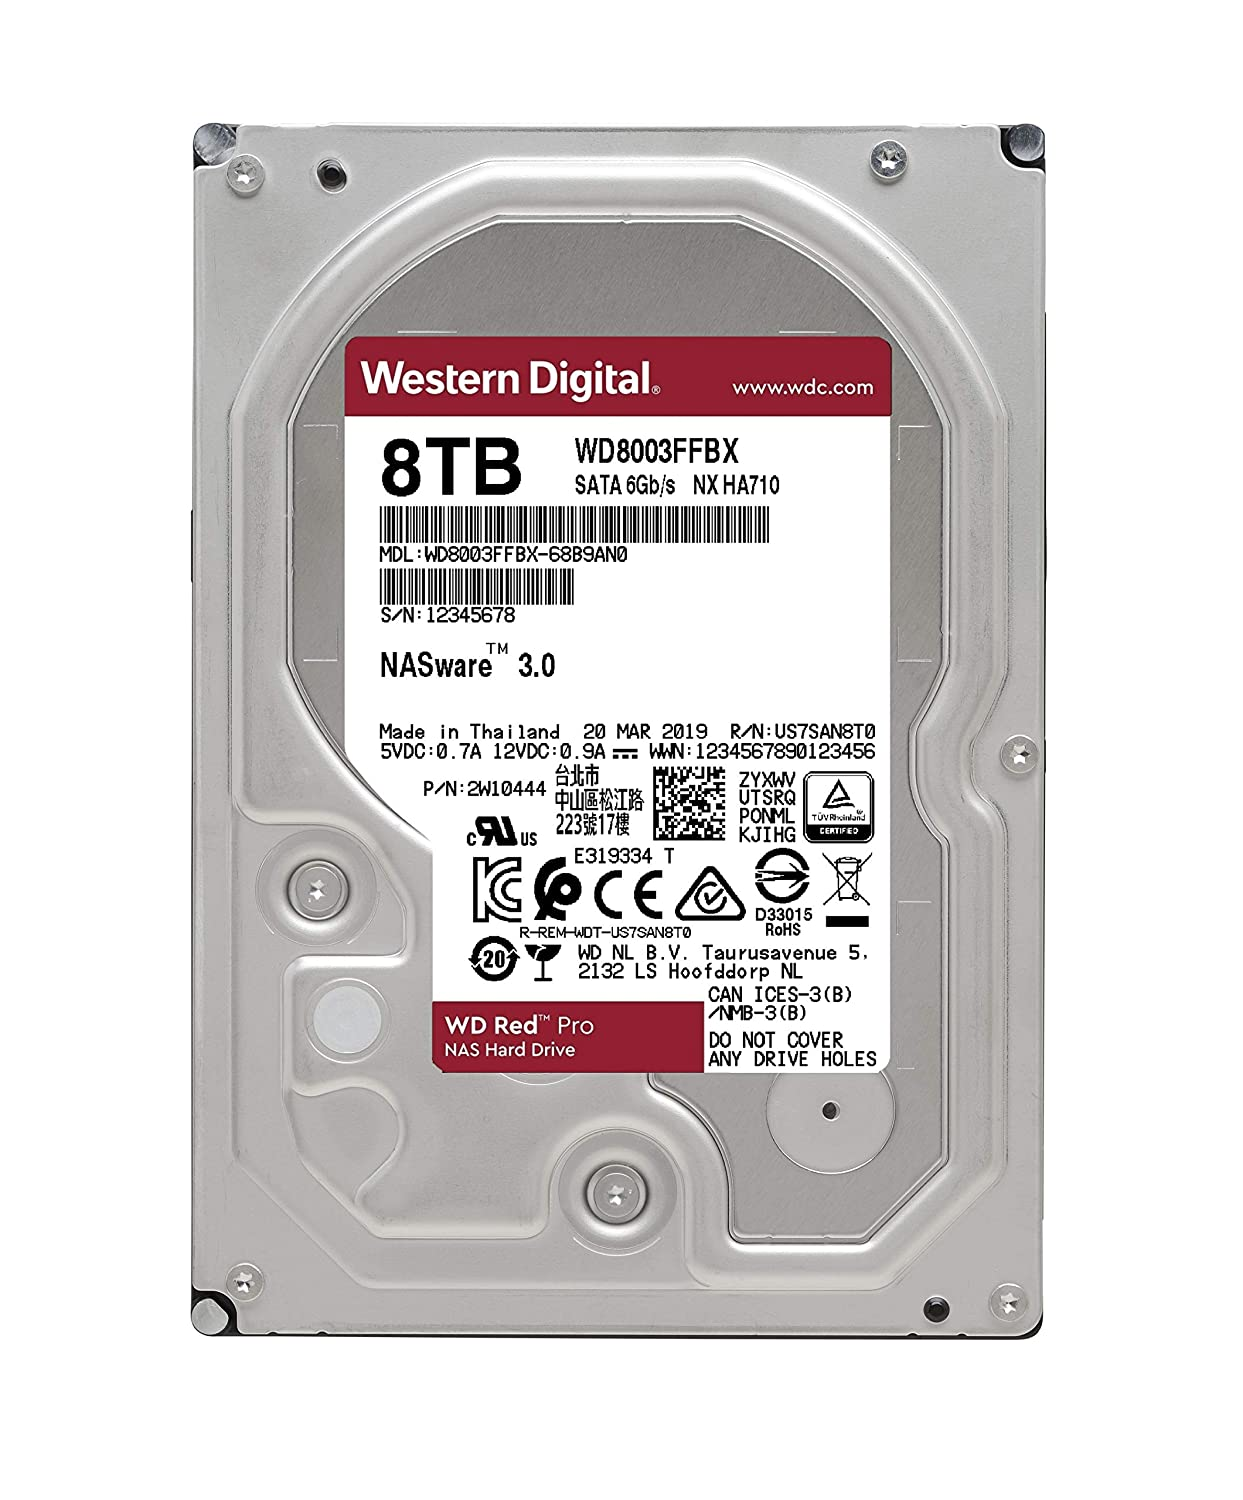 Amazon.com: WD Red Pro 2TB NAS Hard Drive - 7200 RPM Class ...